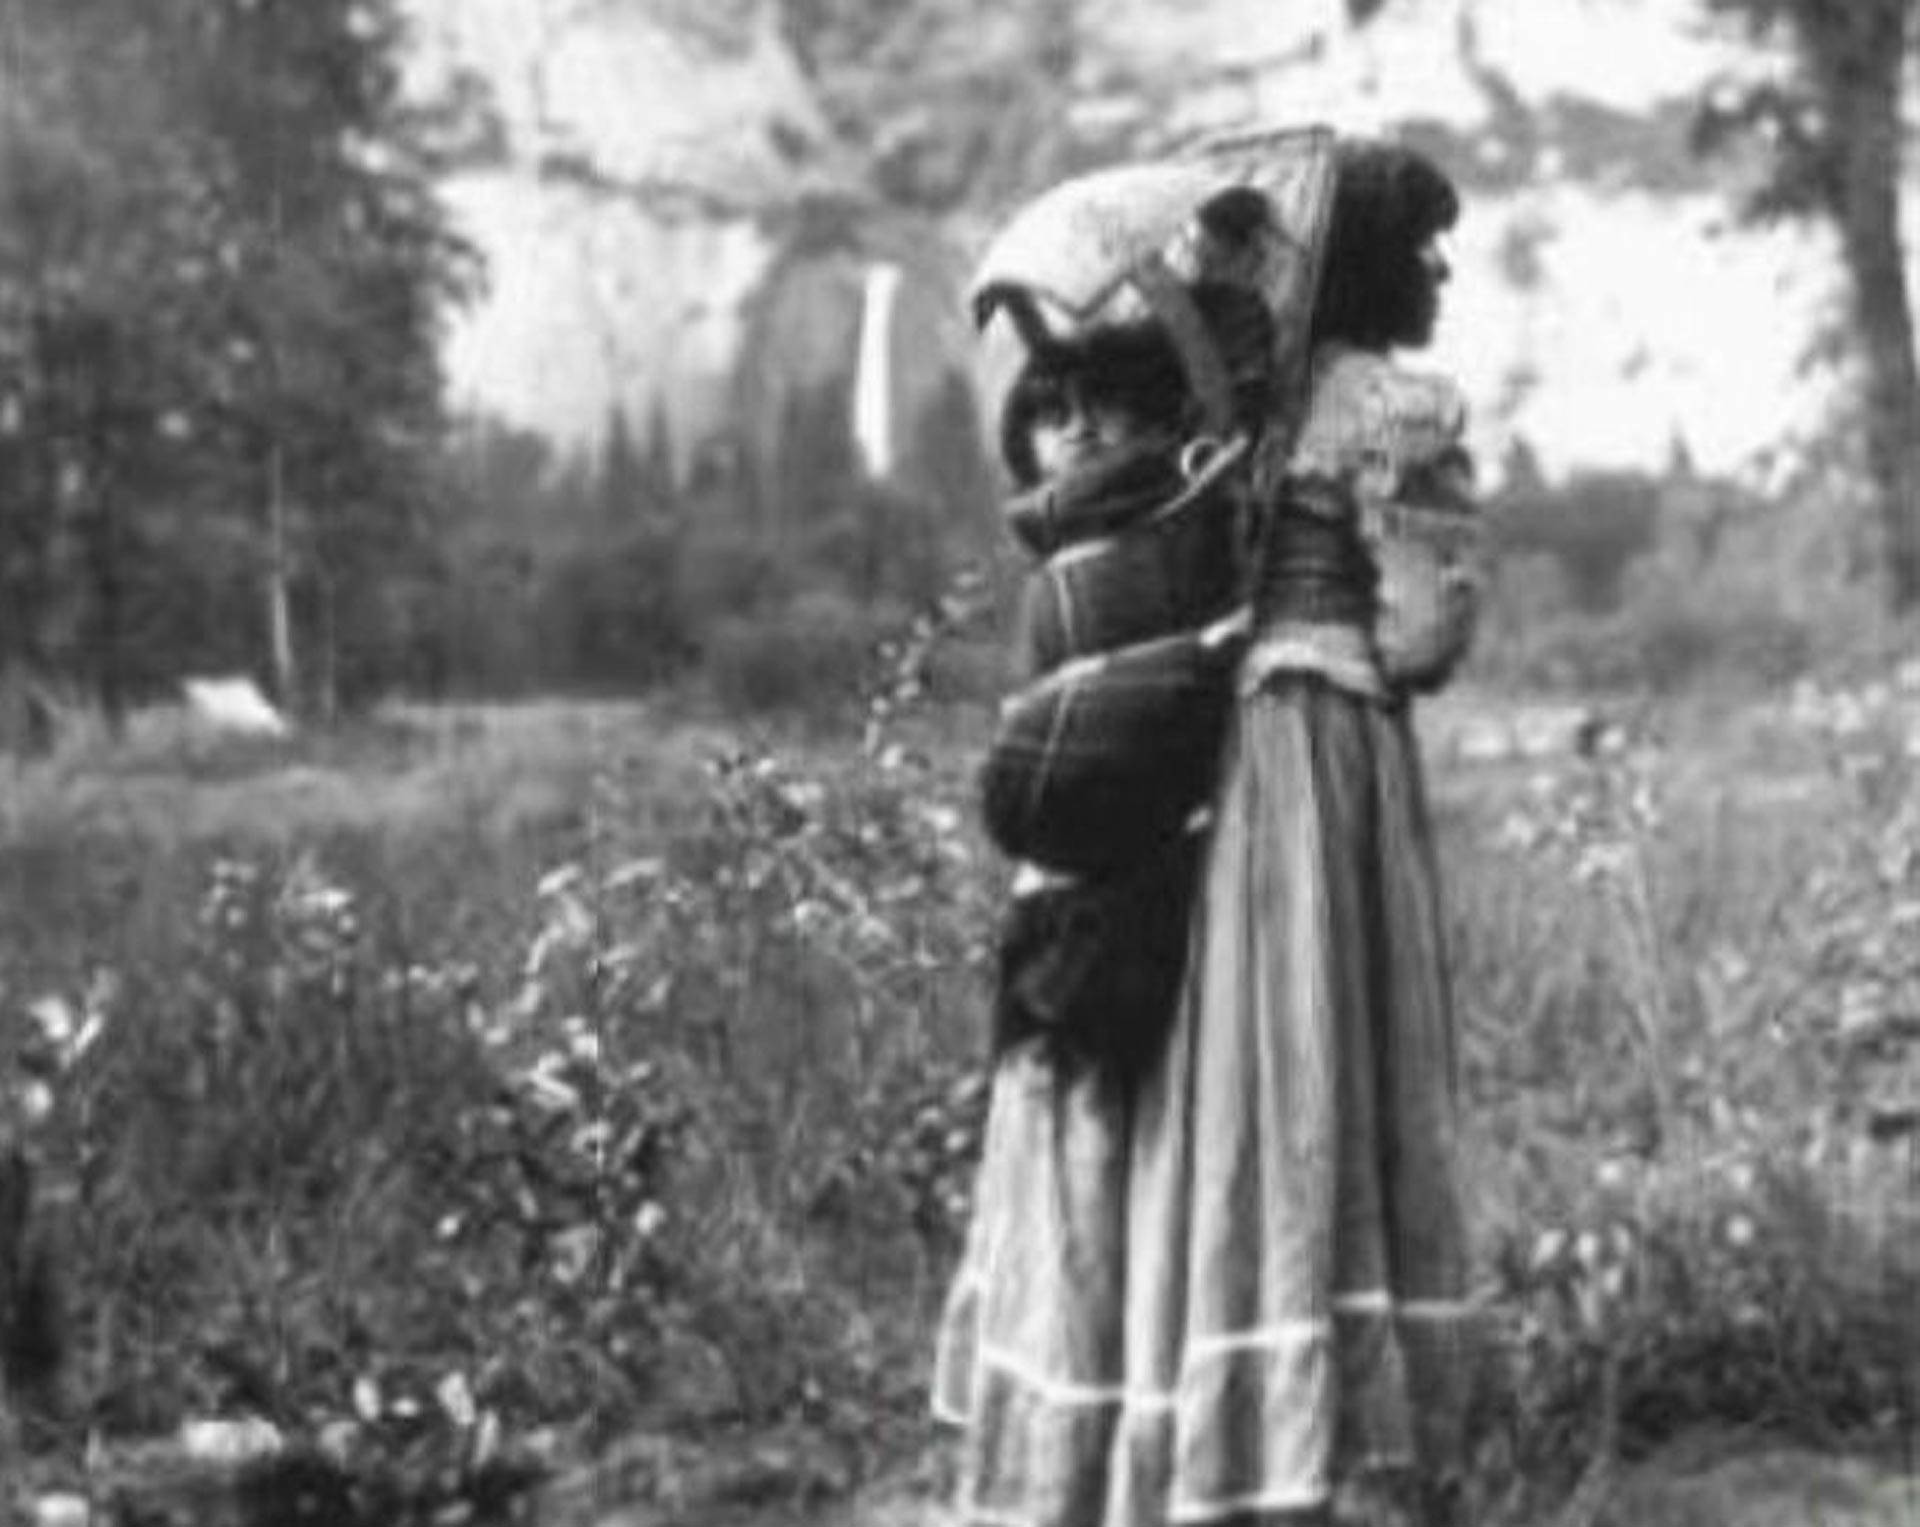 A young Paiute mother carries her child in a cradleboard in Yosemite Valley.